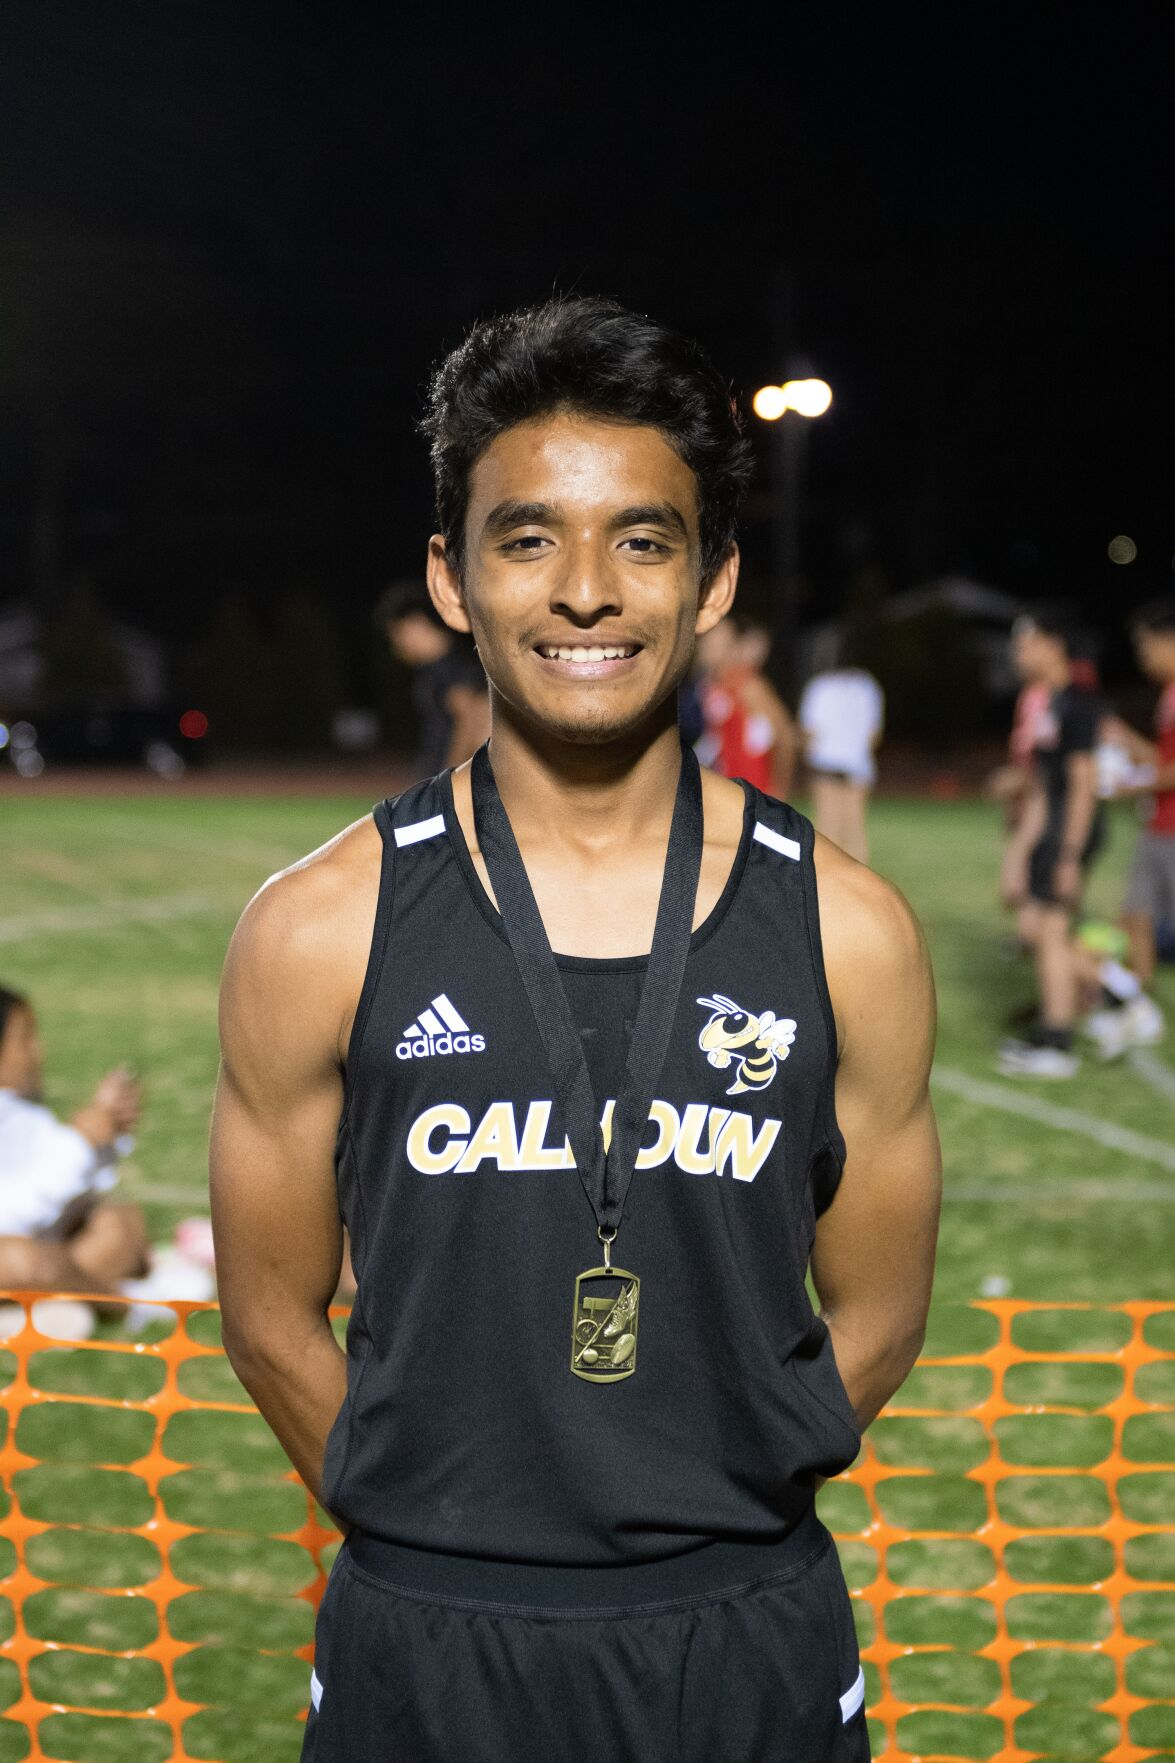 Calhoun Boys highlight local performances at Yellow Jackets invitational with first-place team finish